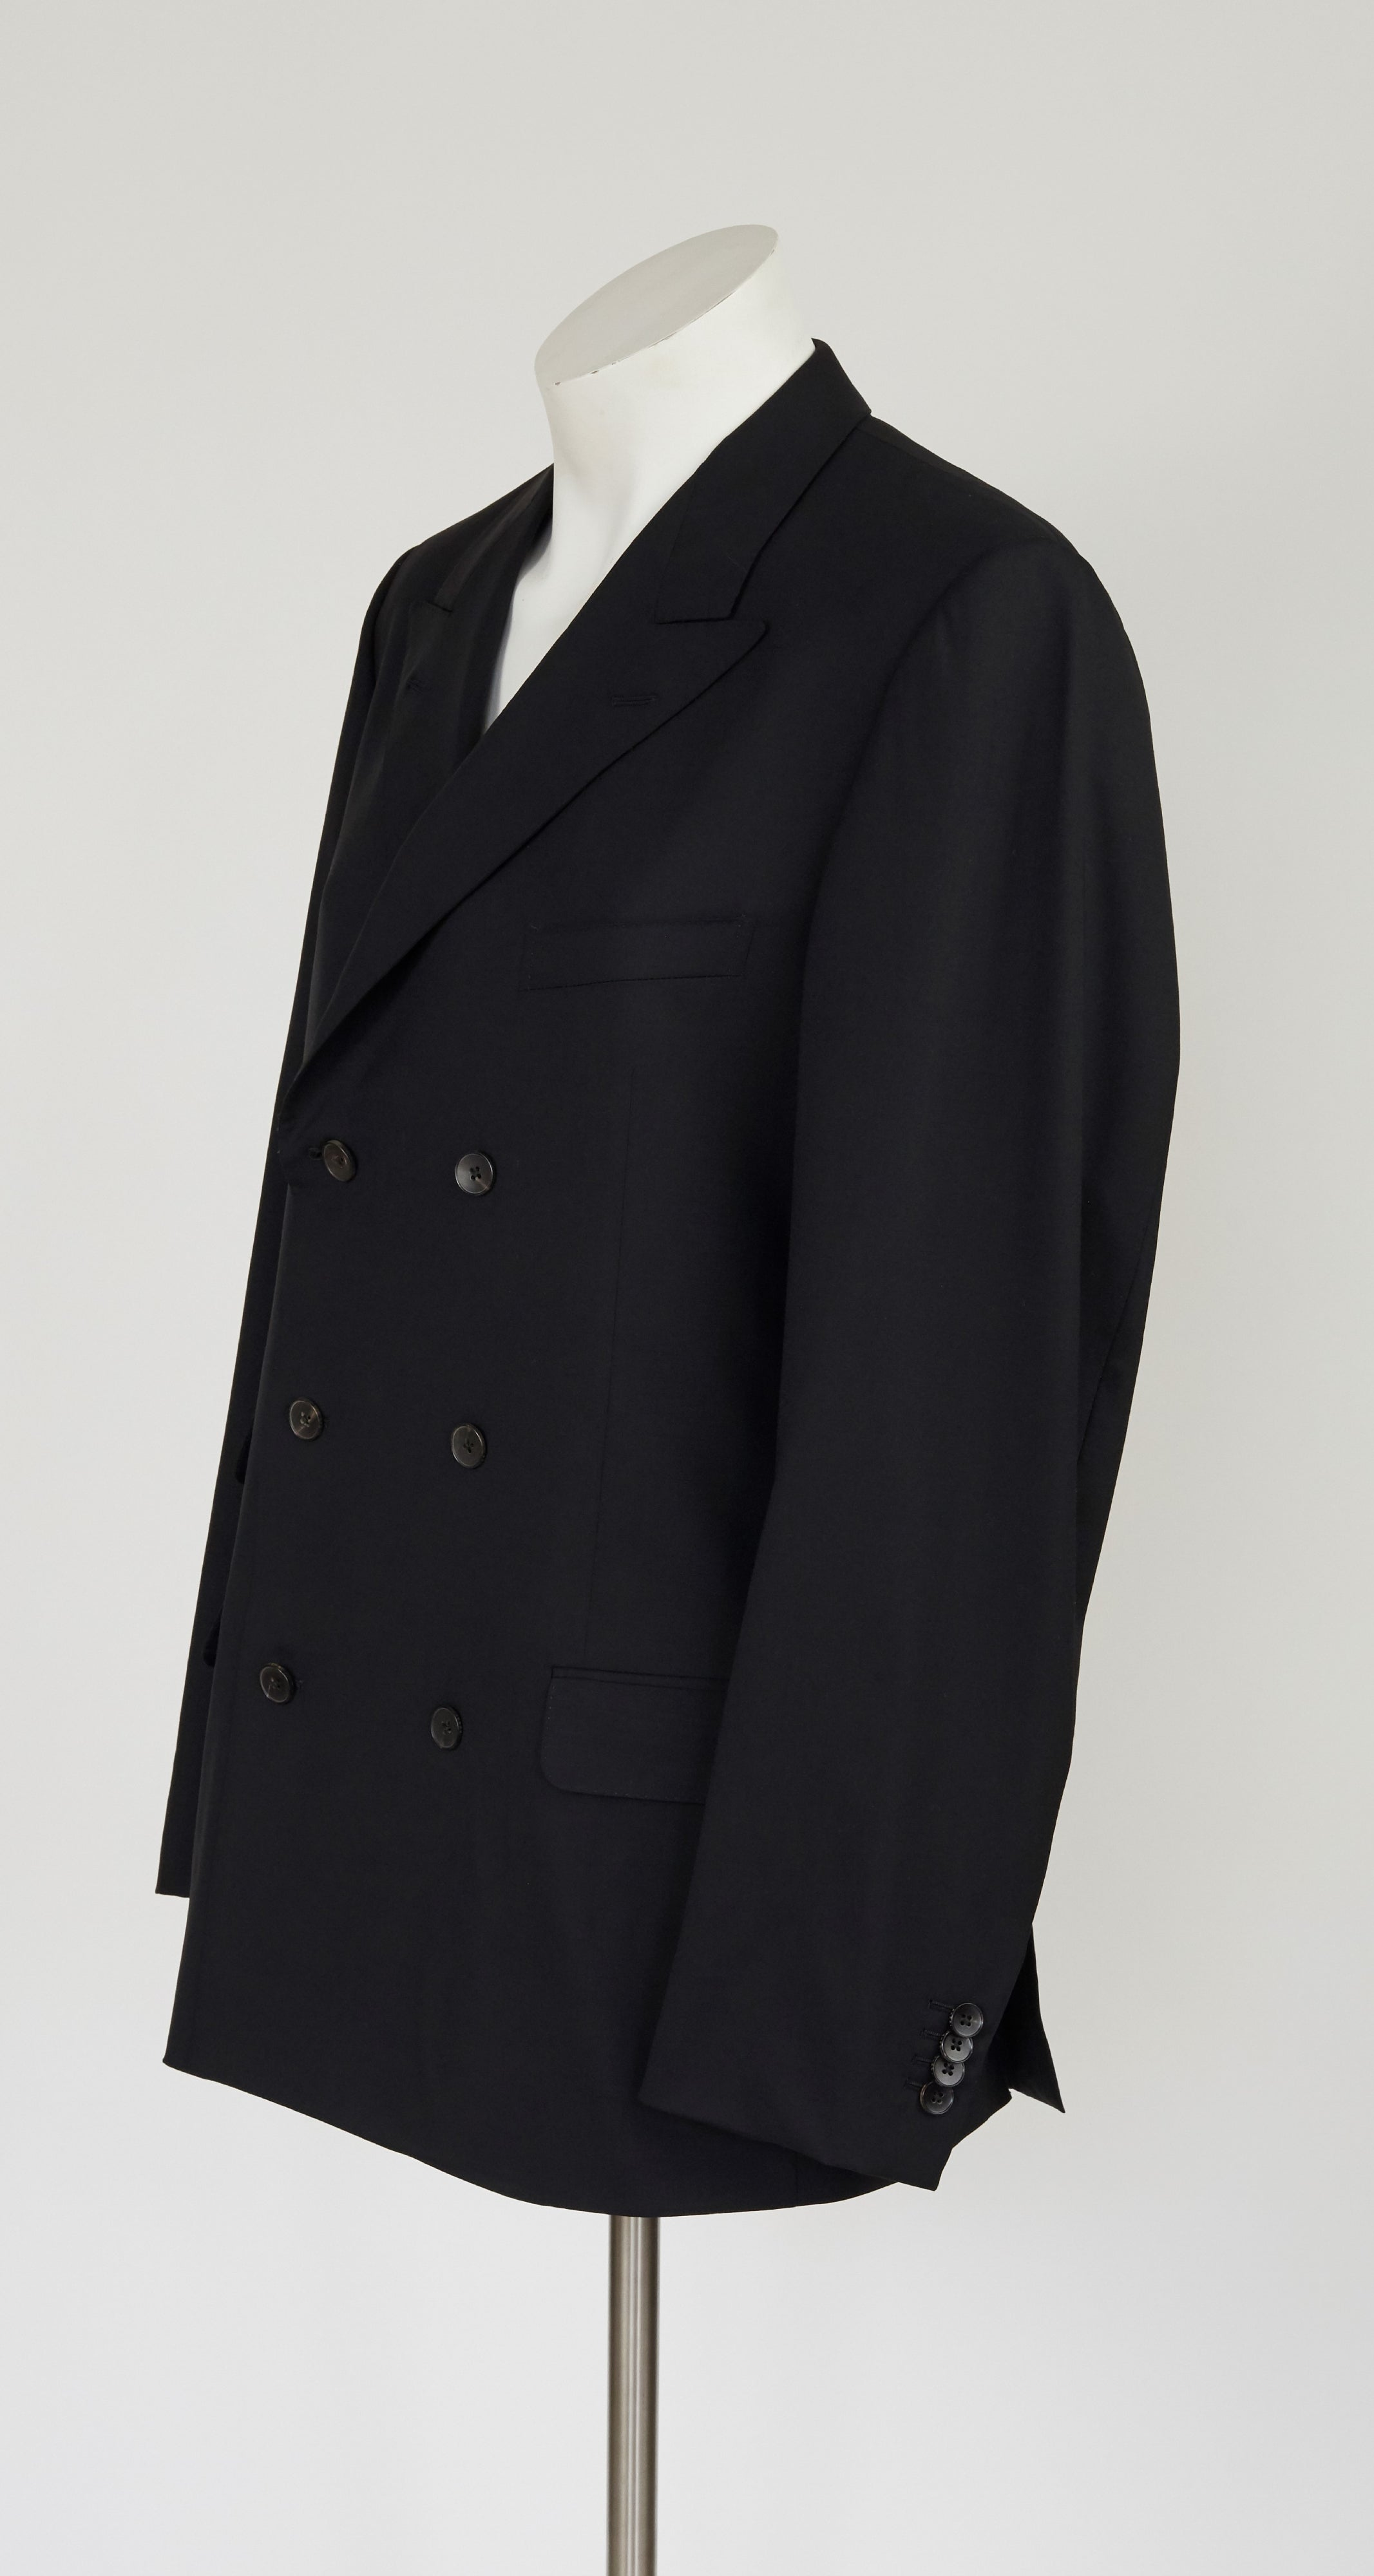 2003 S/S Black Wool Double-Breasted Suit Jacket